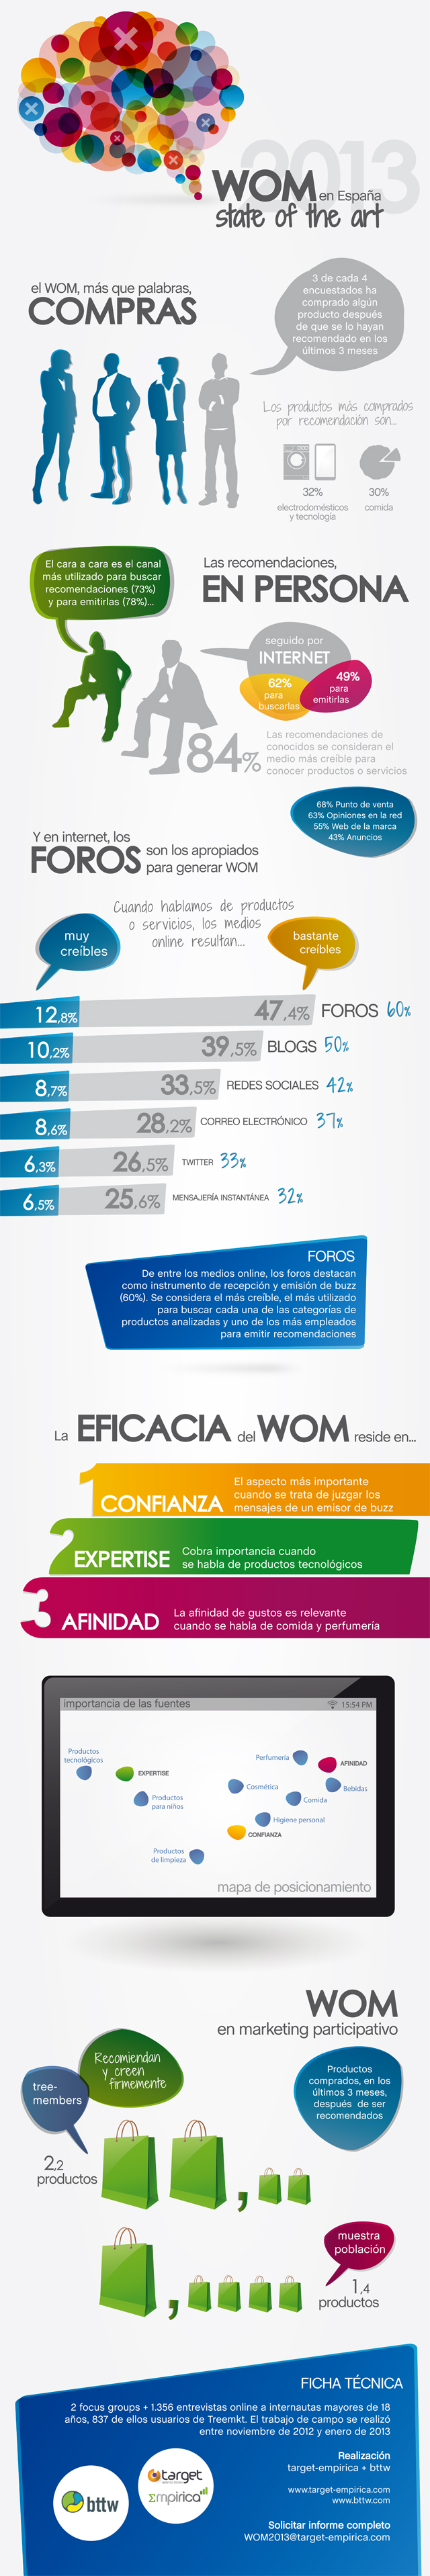 Infografía WOM 2013 State of the Art